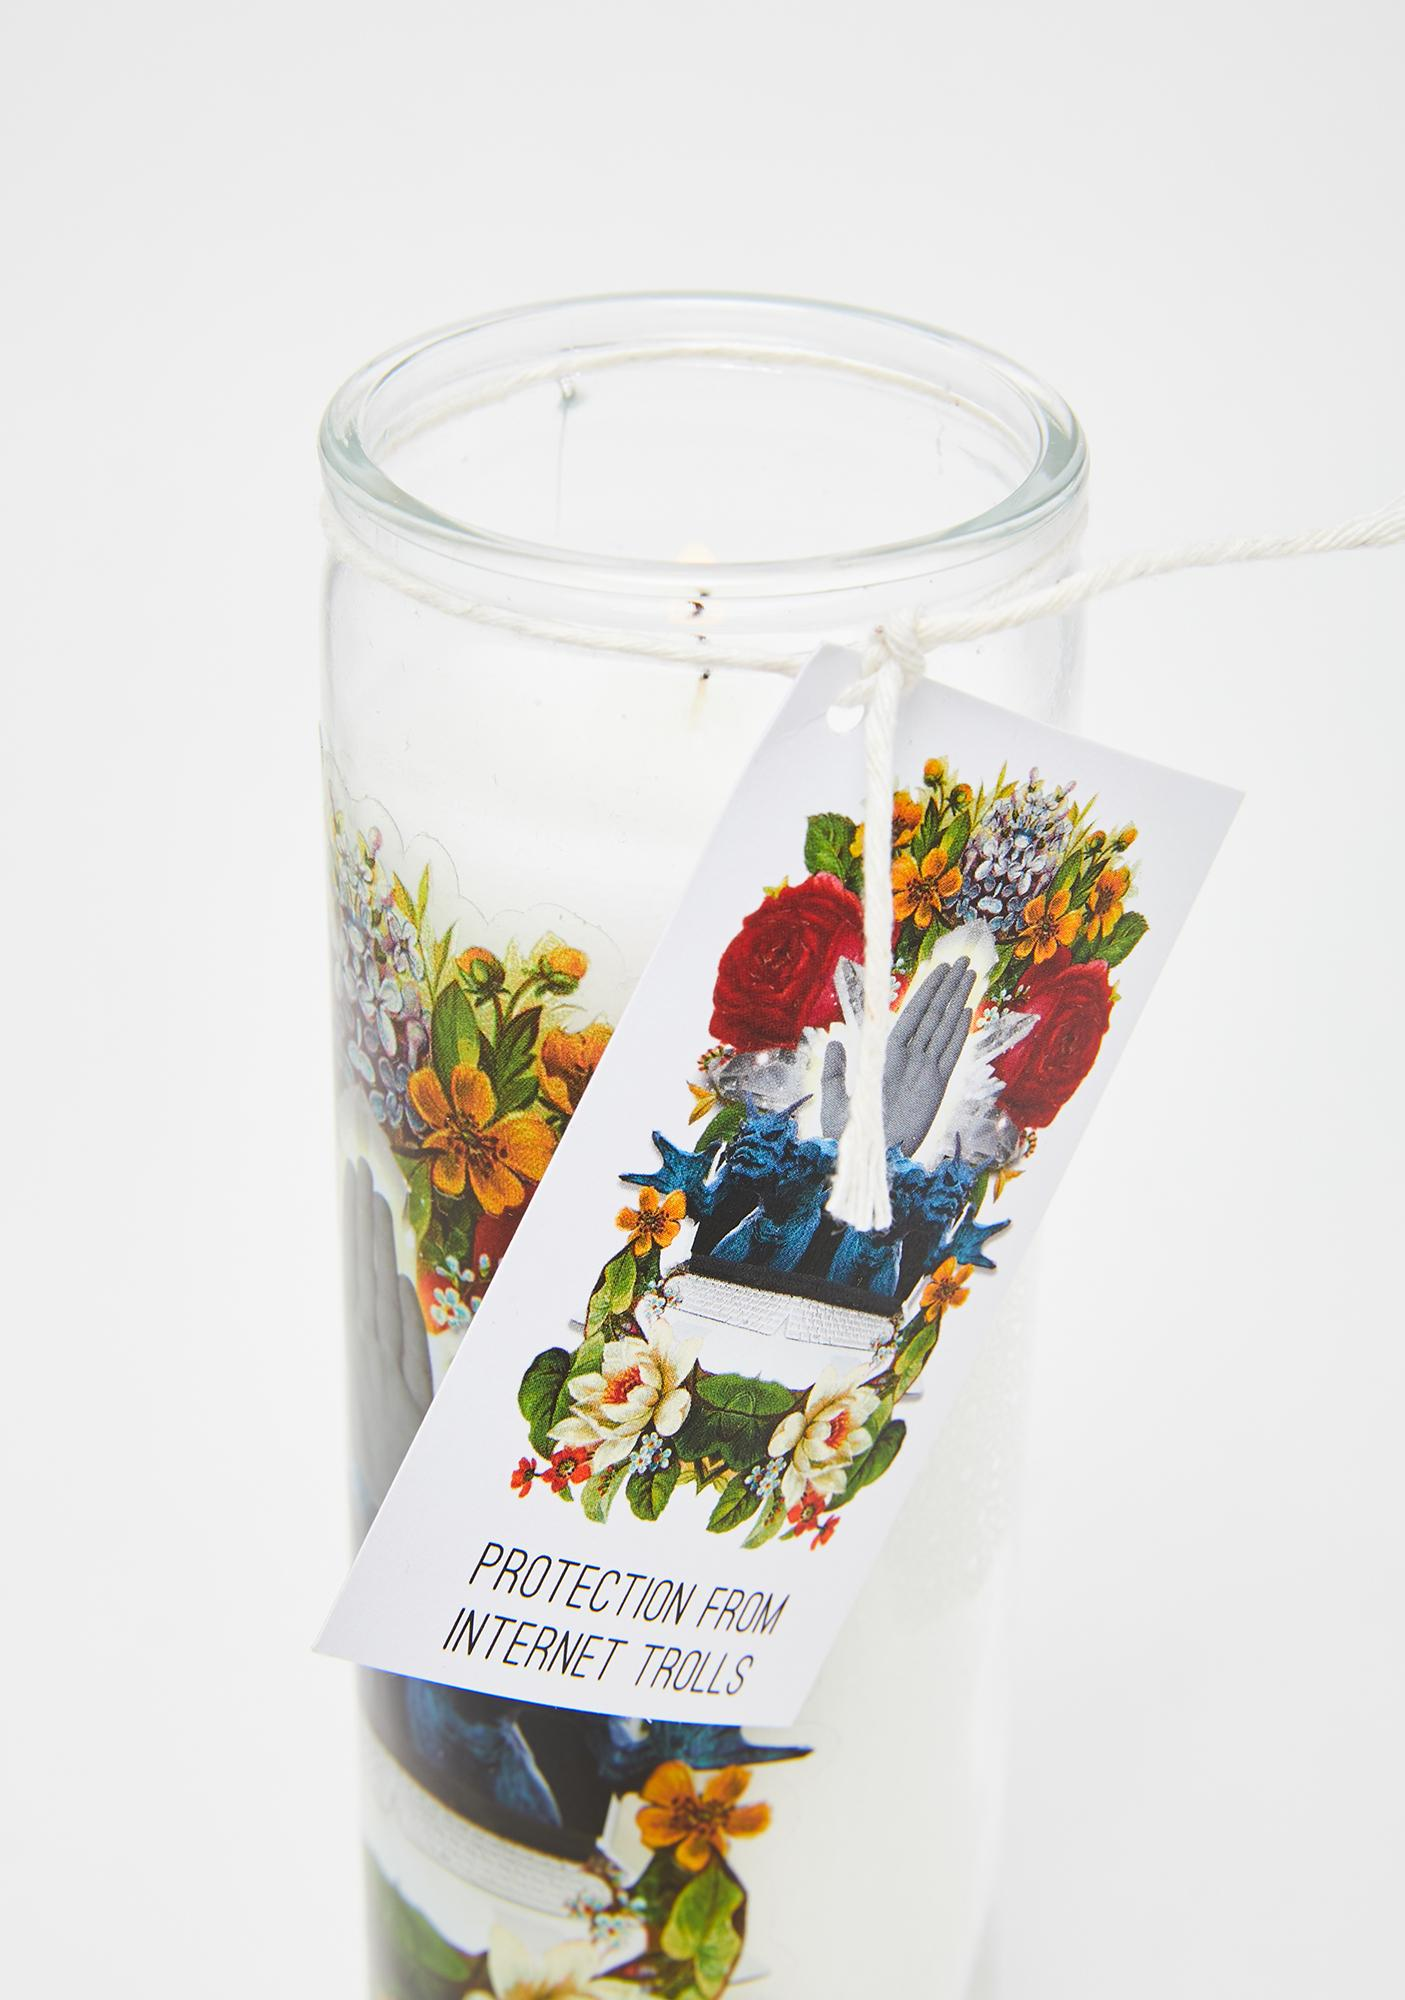 Last Craft Protection From Internet Trolls Spell Candle